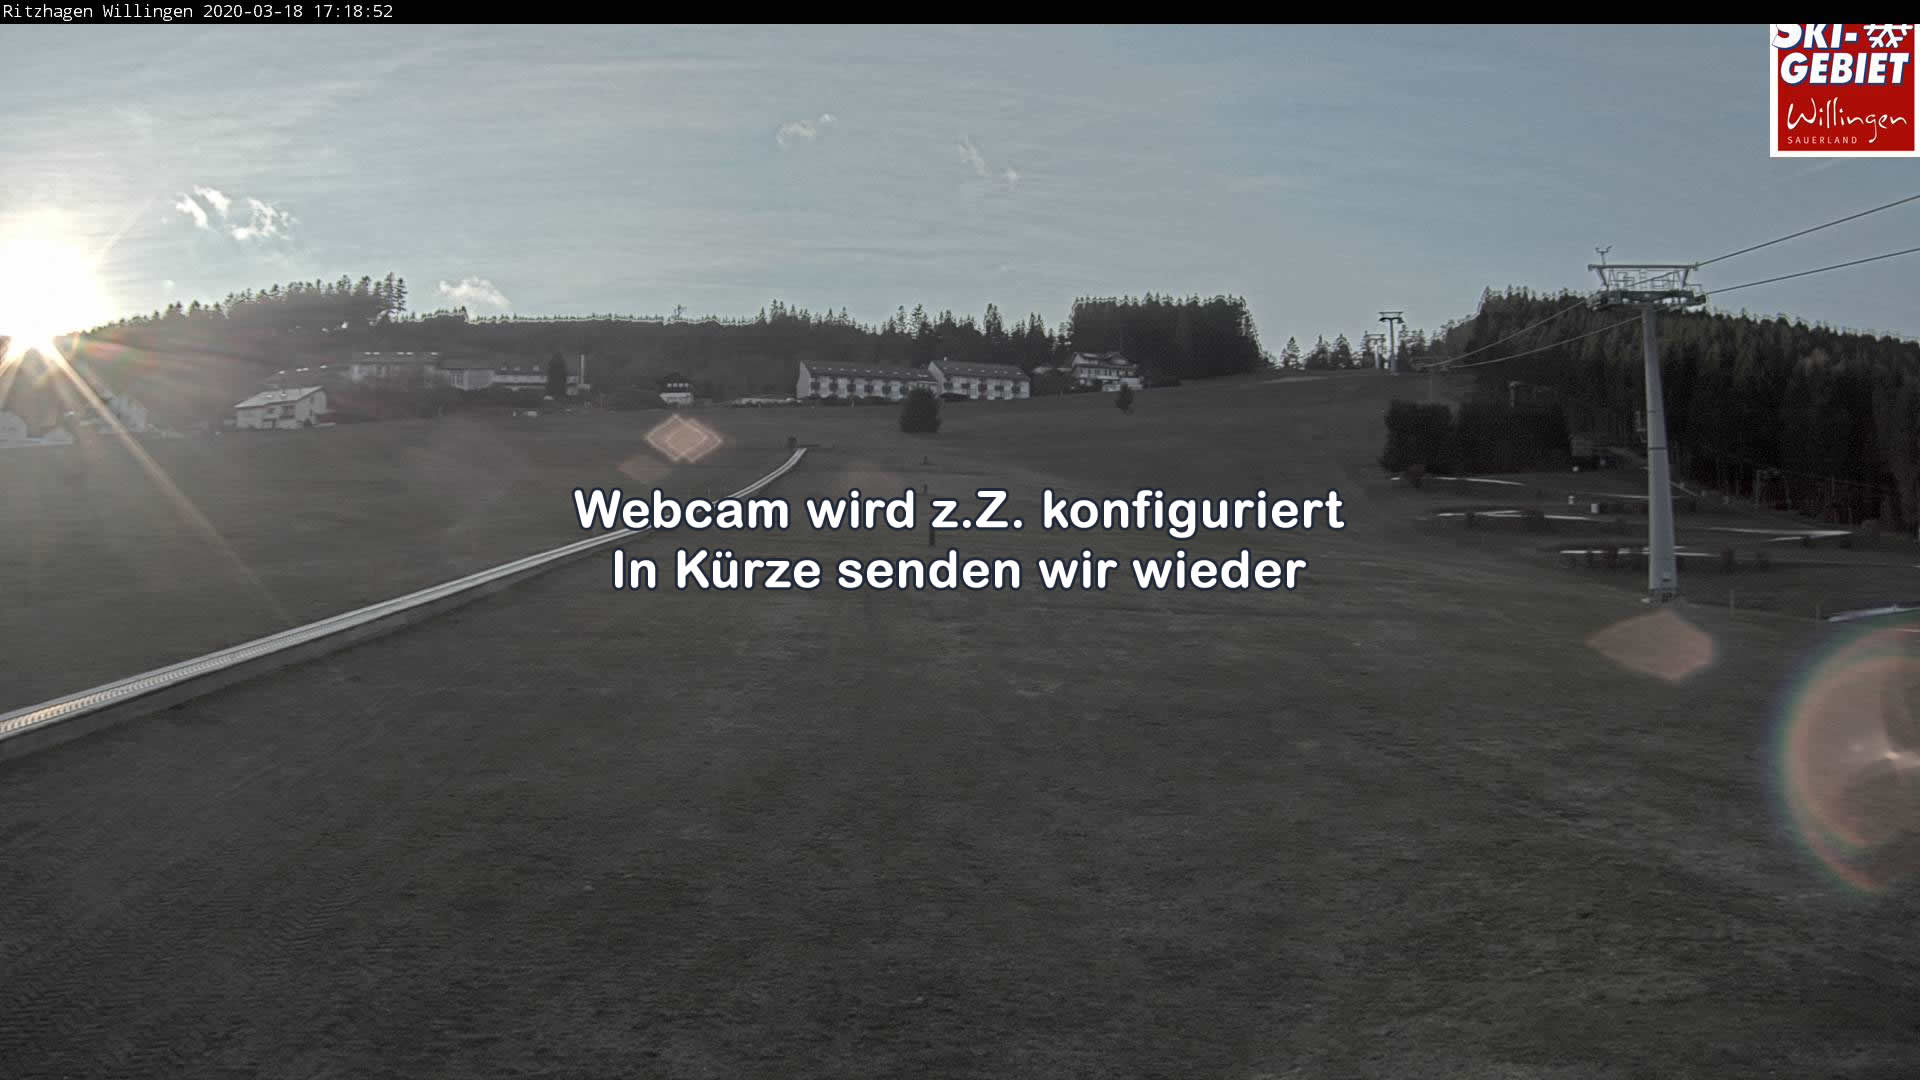 Webcam Ritzhagen